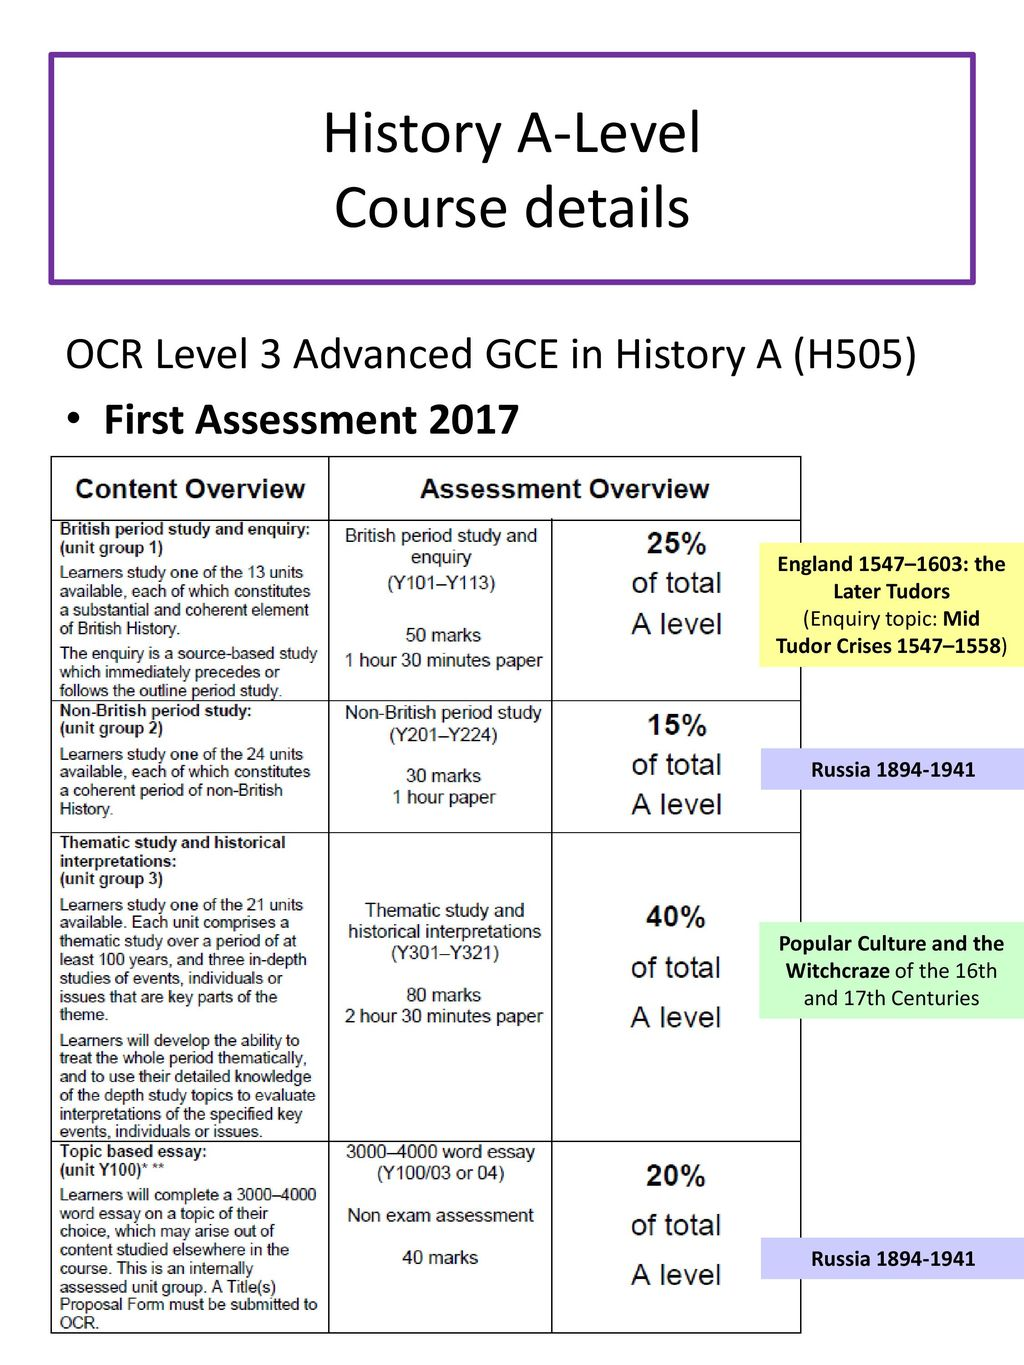 history a level aims to identify the key aspects of the a level   history